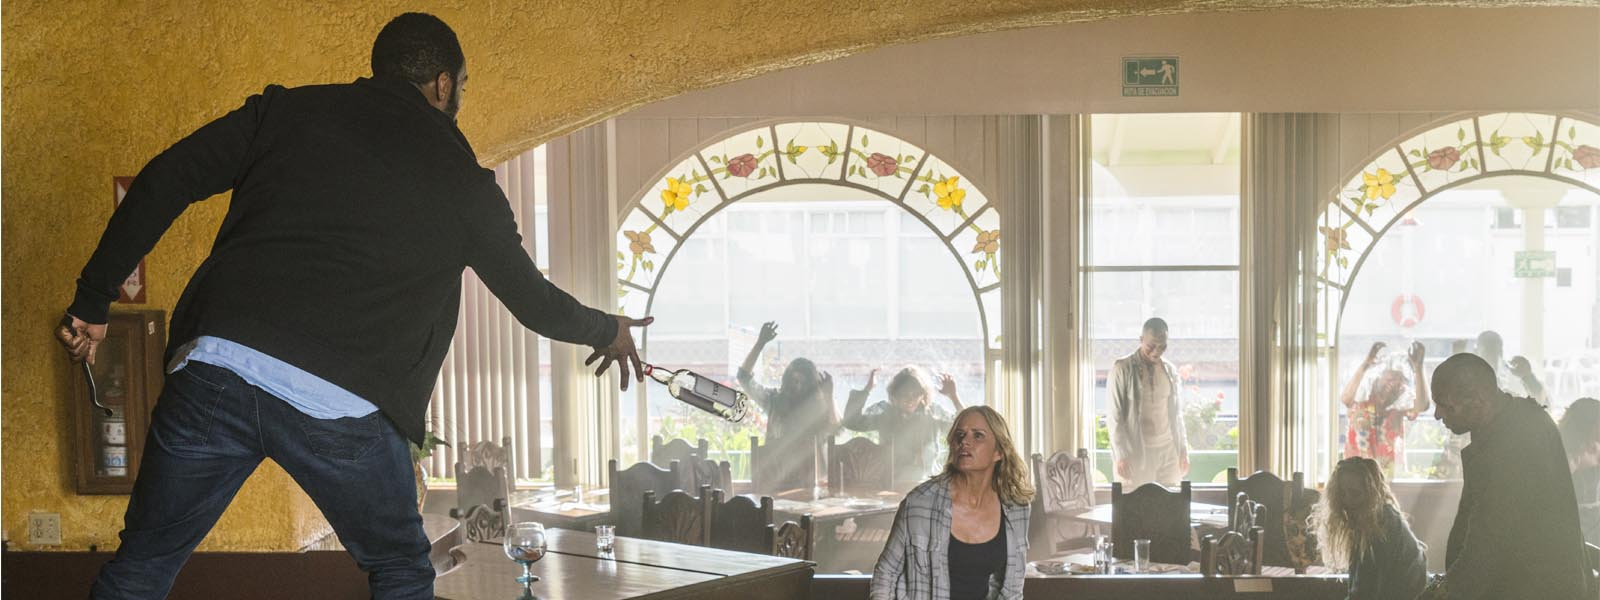 fear-the-walking-dead-episode-209-strand-domingo-madison-dickens-post-800×600